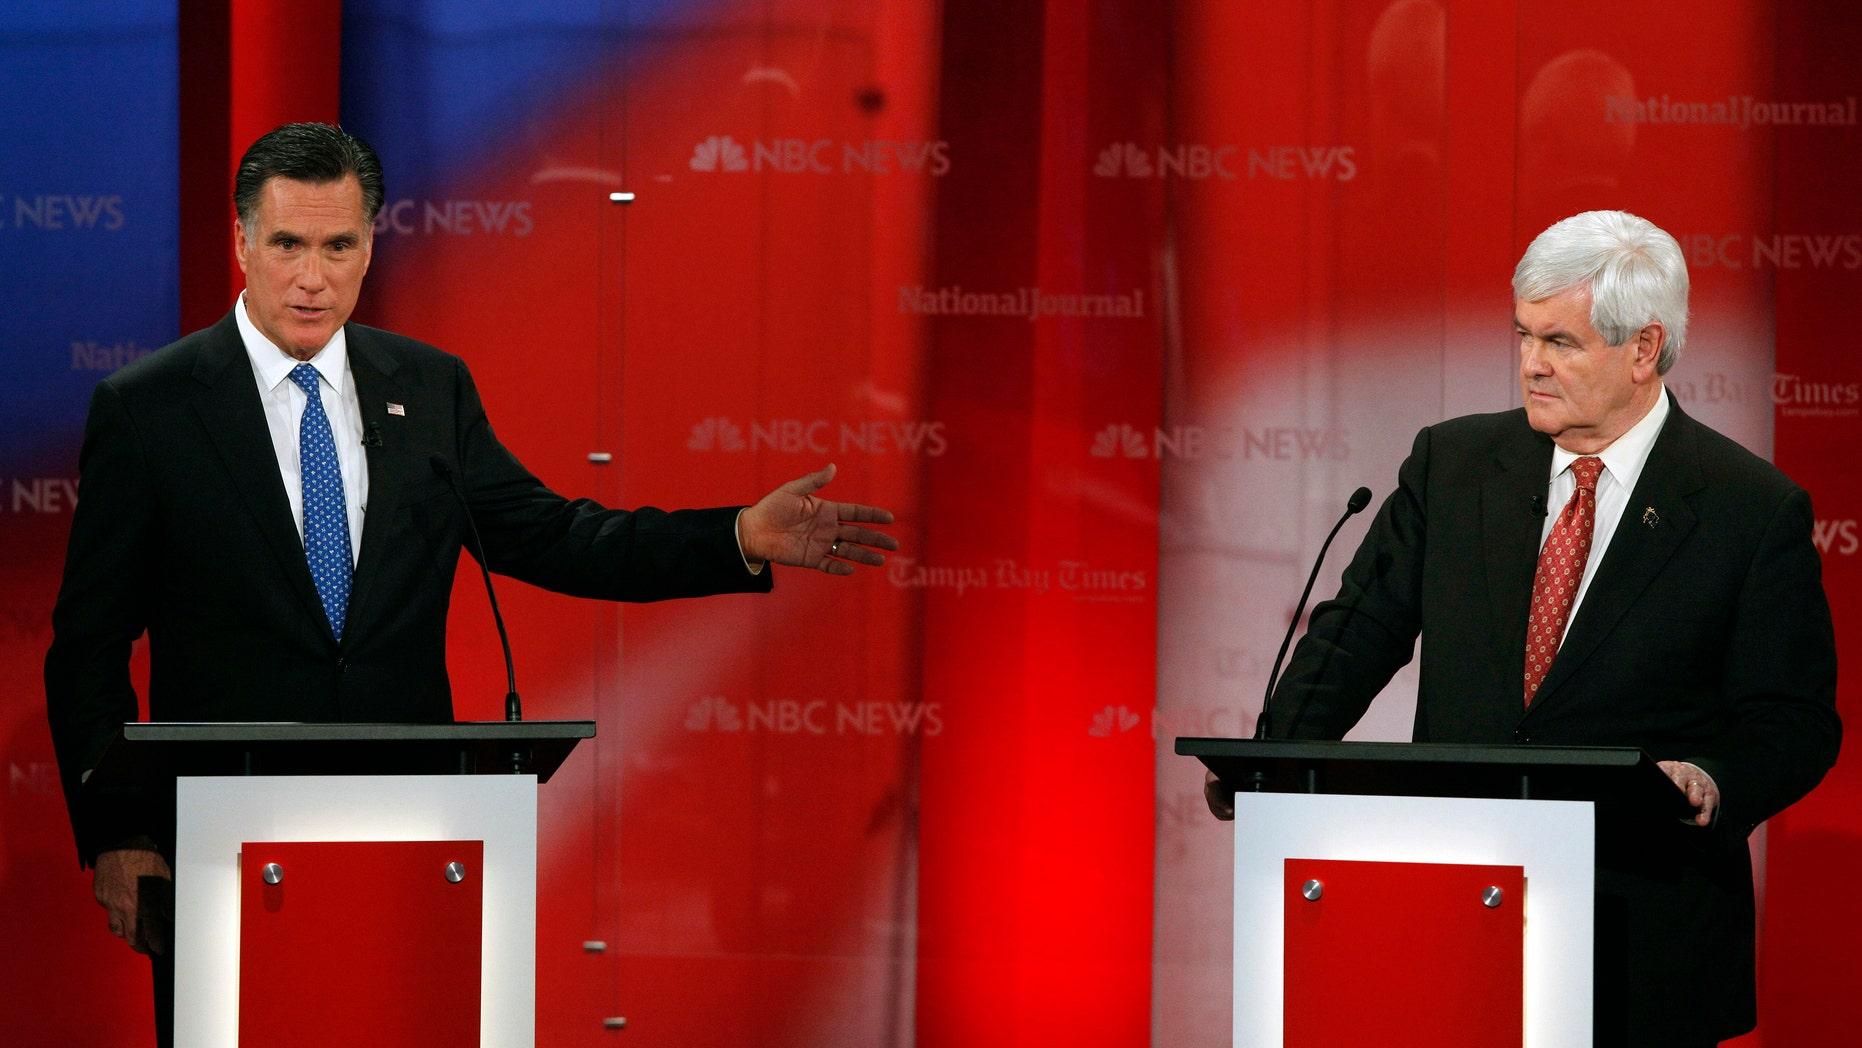 Republican presidential candidate, former Massachusetts Gov. Mitt Romney, gestures to former House Speaker Newt Gingrich during a Republican presidential debate Monday, Jan. 23, 2012, at the University of South Florida in Tampa, Fla. (AP Photo/Paul Sancya)